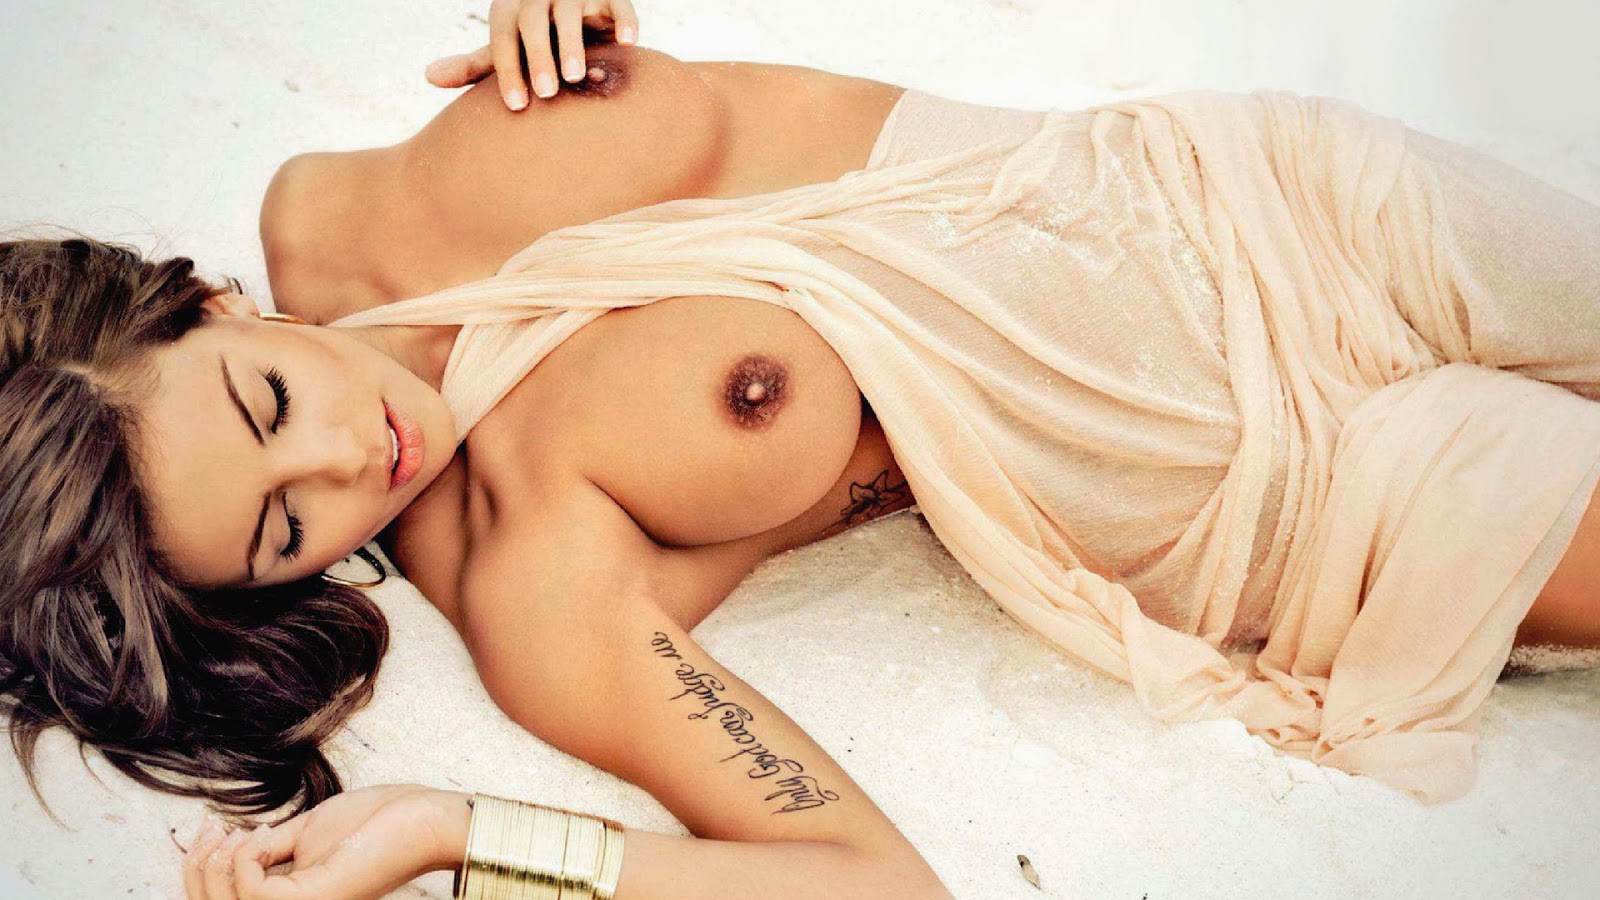 Hot Boobs On Sand Erotic Tattoo Wallpaper